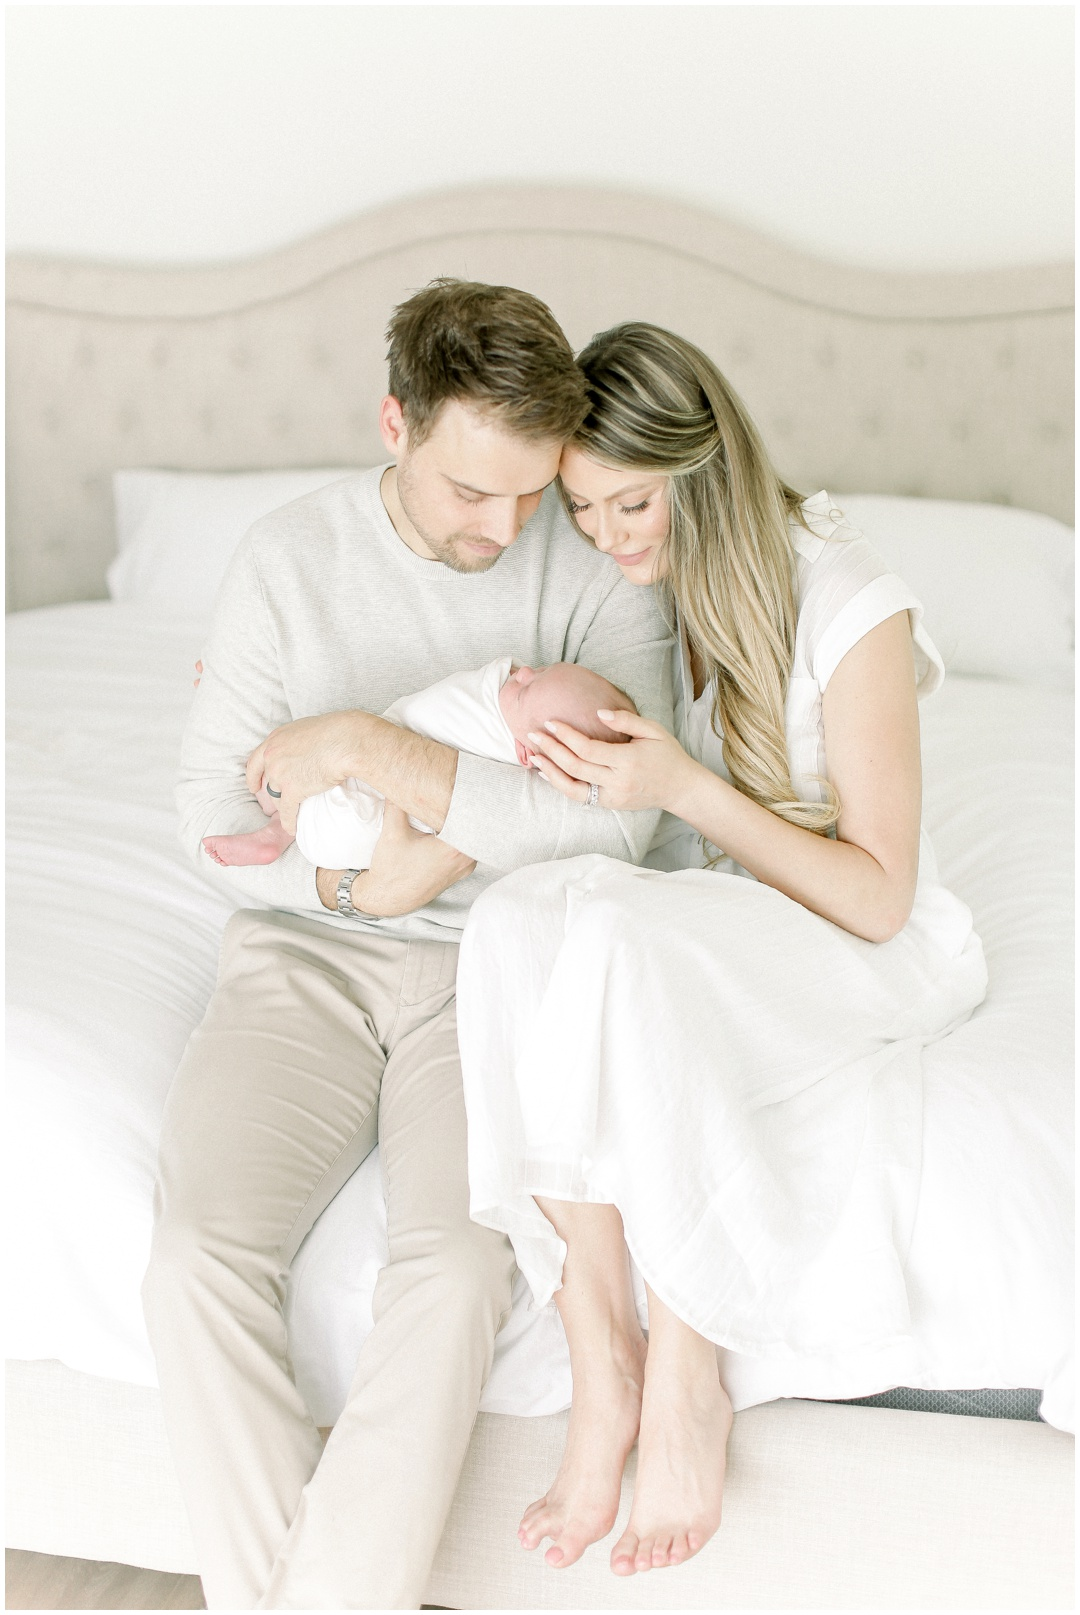 Newport_Beach_Newborn_Light_Airy_Natural_Photographer_Newport_Beach_Photographer_Orange_County_Family_Photographer_Cori_Kleckner_Photography_Newport_Beach_Photographer_newborn_Stephanie_Messiter_Steinhafel_David_Steinhafel_3838.jpg